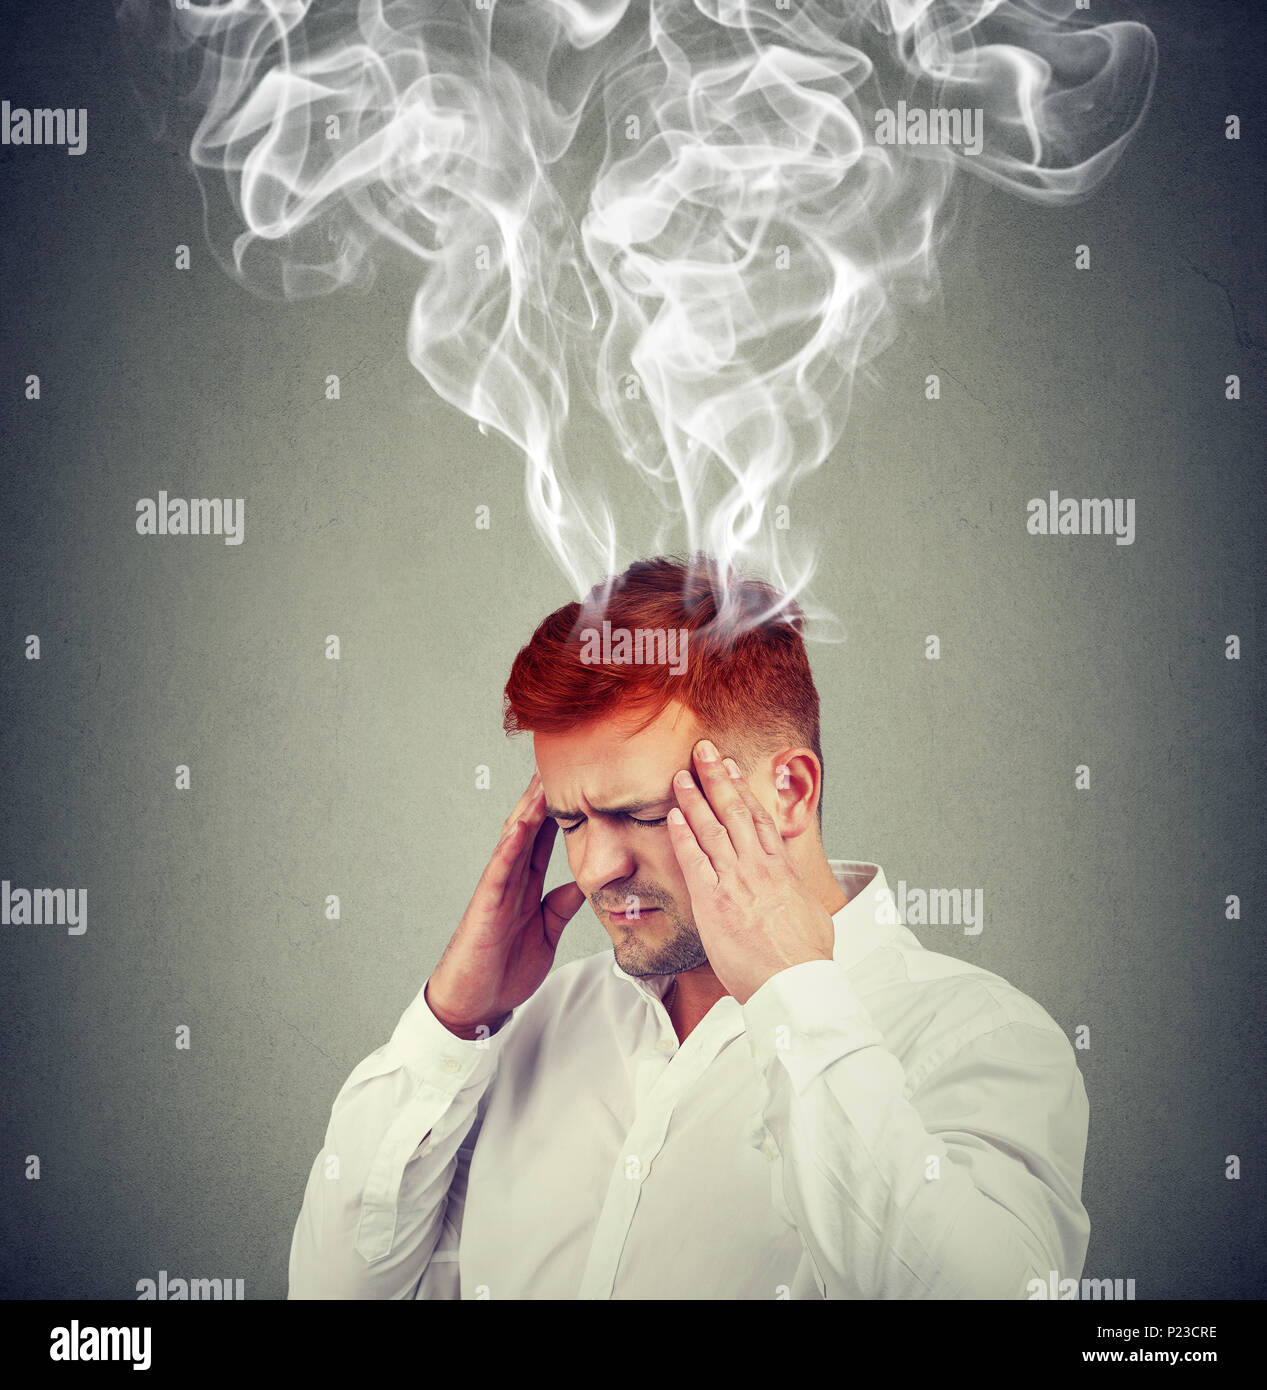 Conceptual shot of man holding hands on temples and looking frustrated with smoke coming out of head. - Stock Image